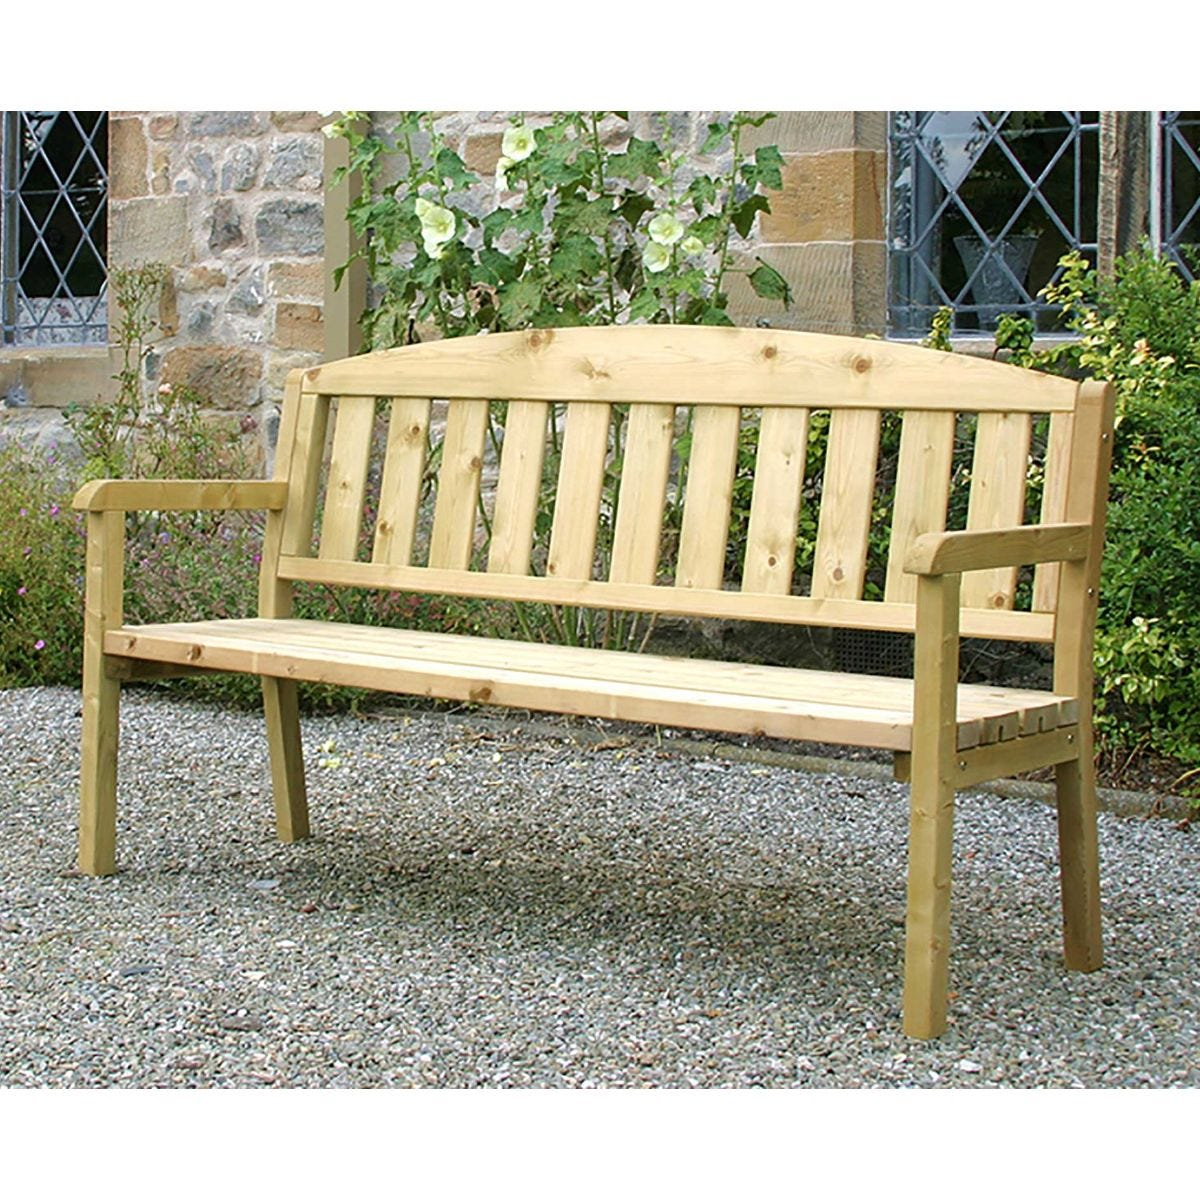 Zest4Leisure Caroline 3 Seater Garden Bench